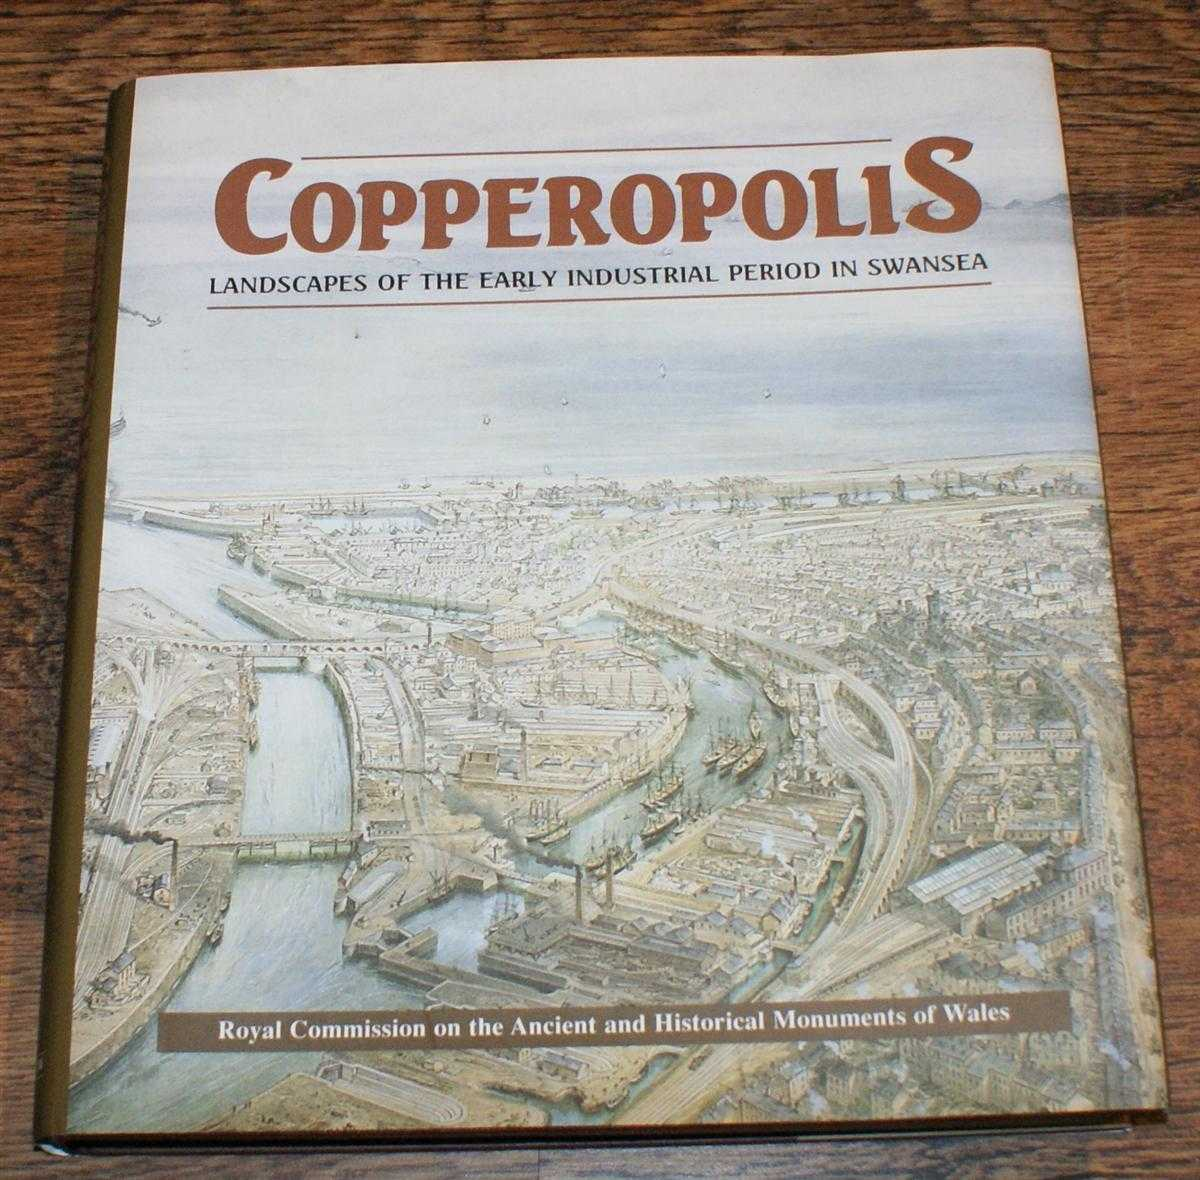 Copperopolis - Landscapes of the Early Industrial Period in Swansea, Stephen Hughes